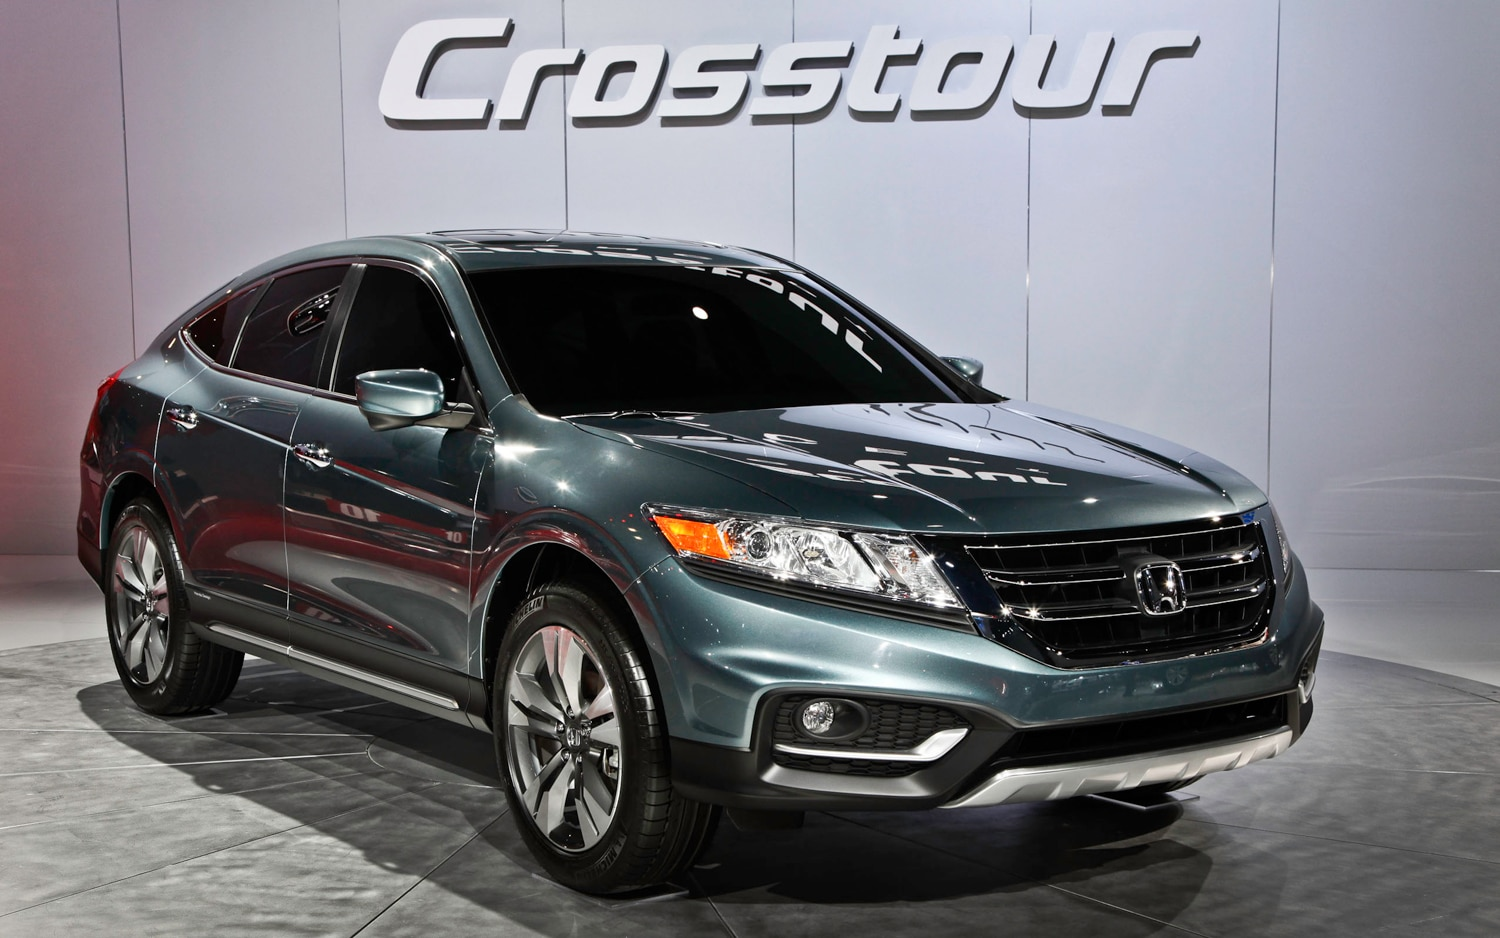 2013 Honda Crosstour Concept Front Right Side View1